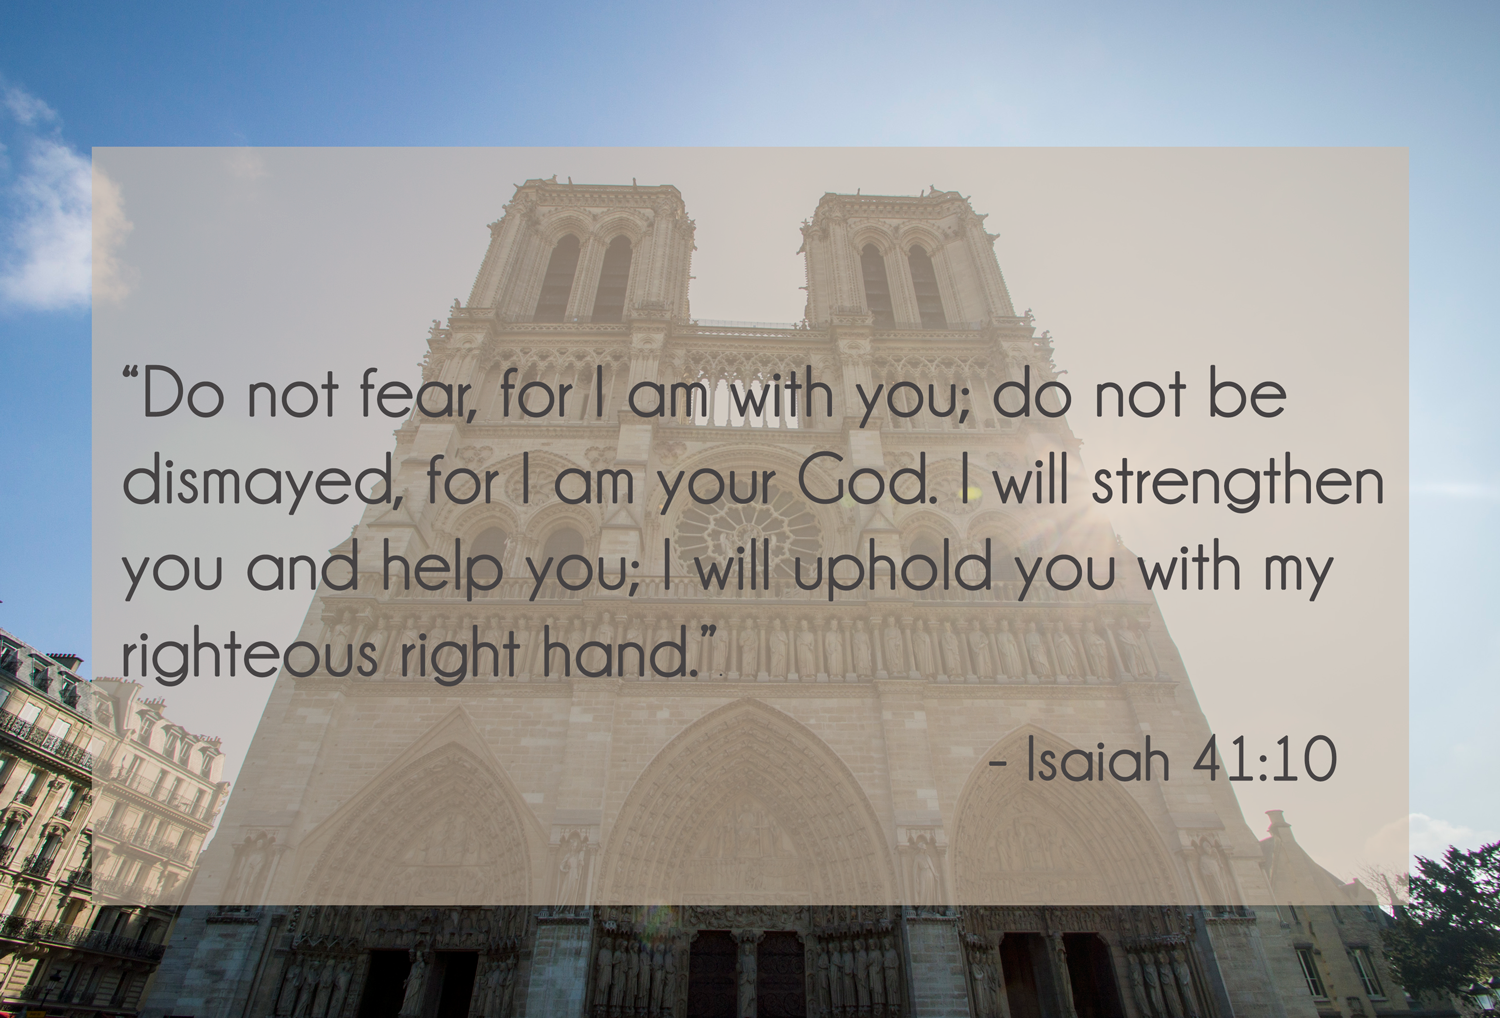 Choosing faith over fear - Isaiah 41:10